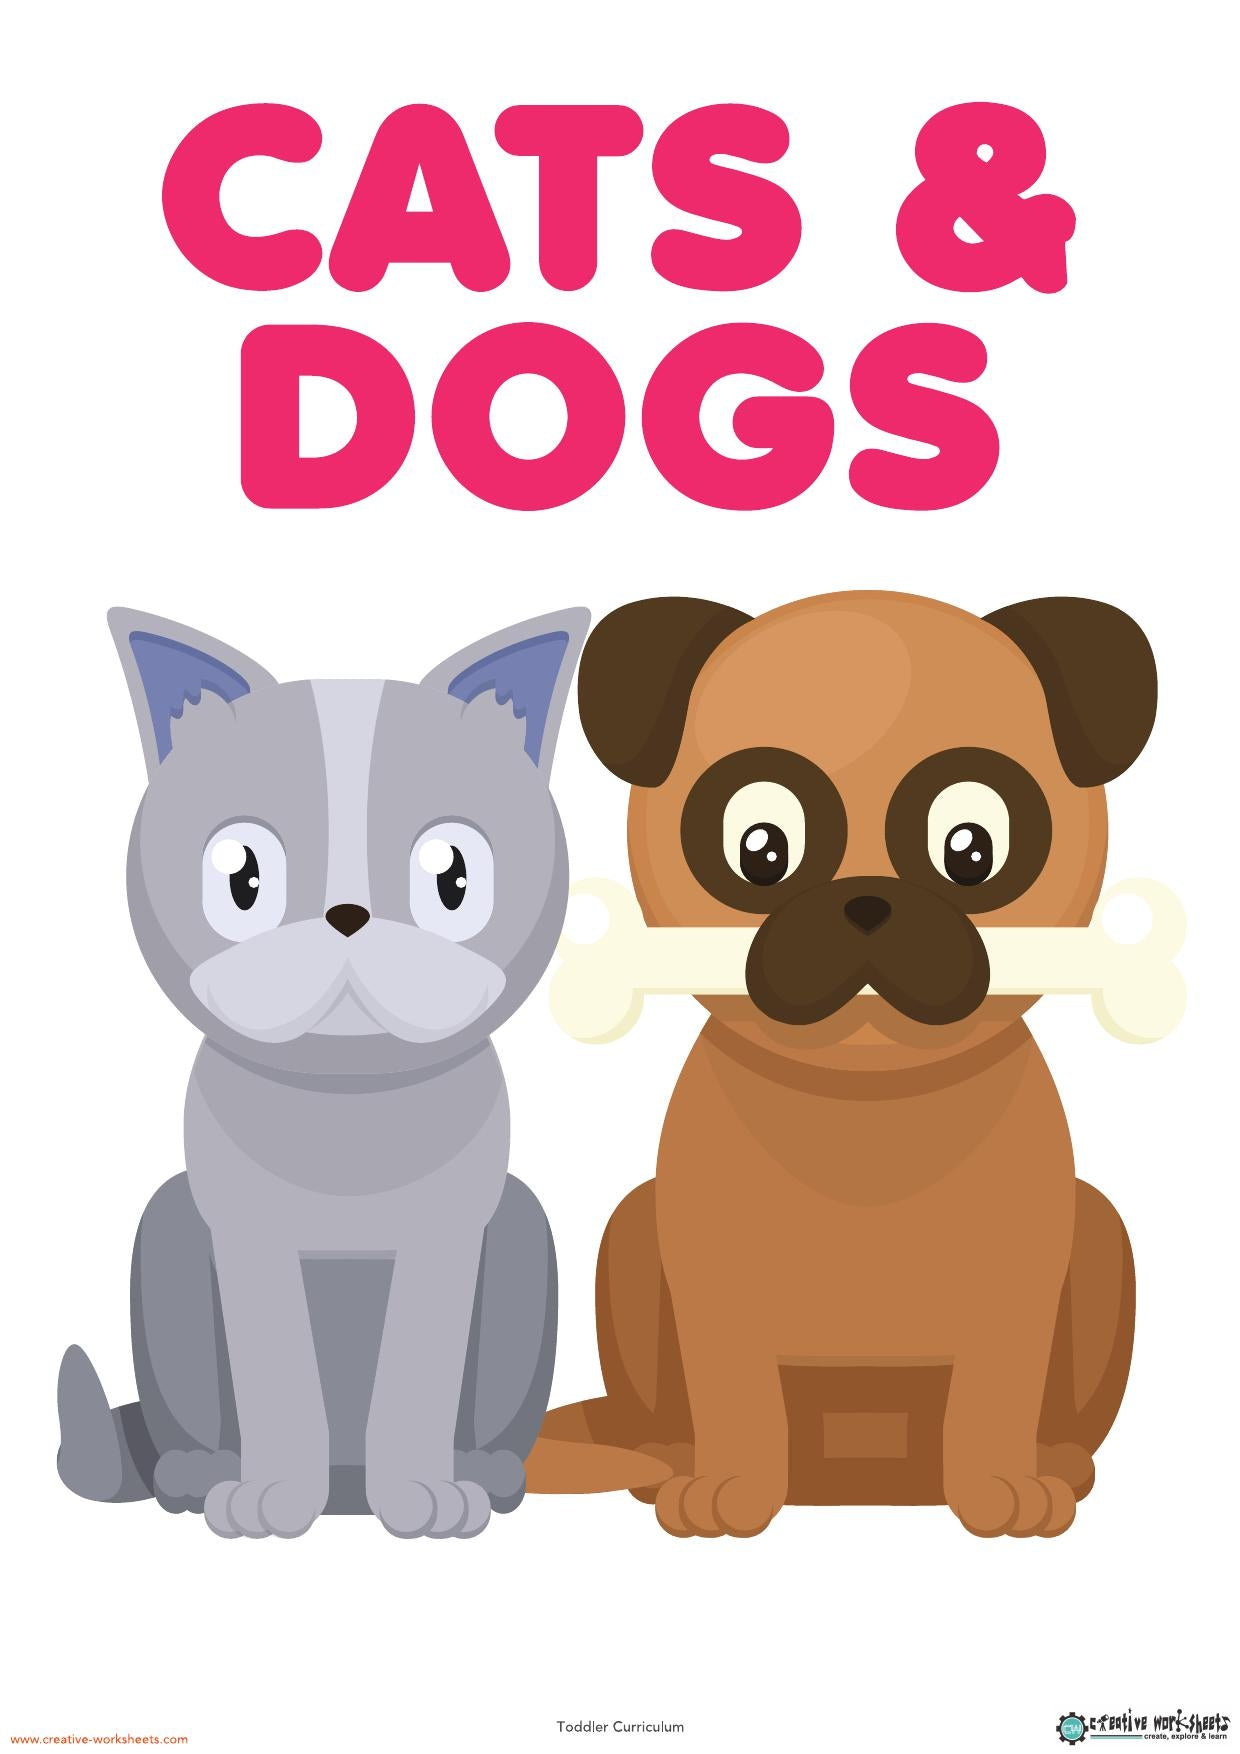 CATS & DOGS UNIT - TODDLER CURRICULUM - CreativeWorksheets